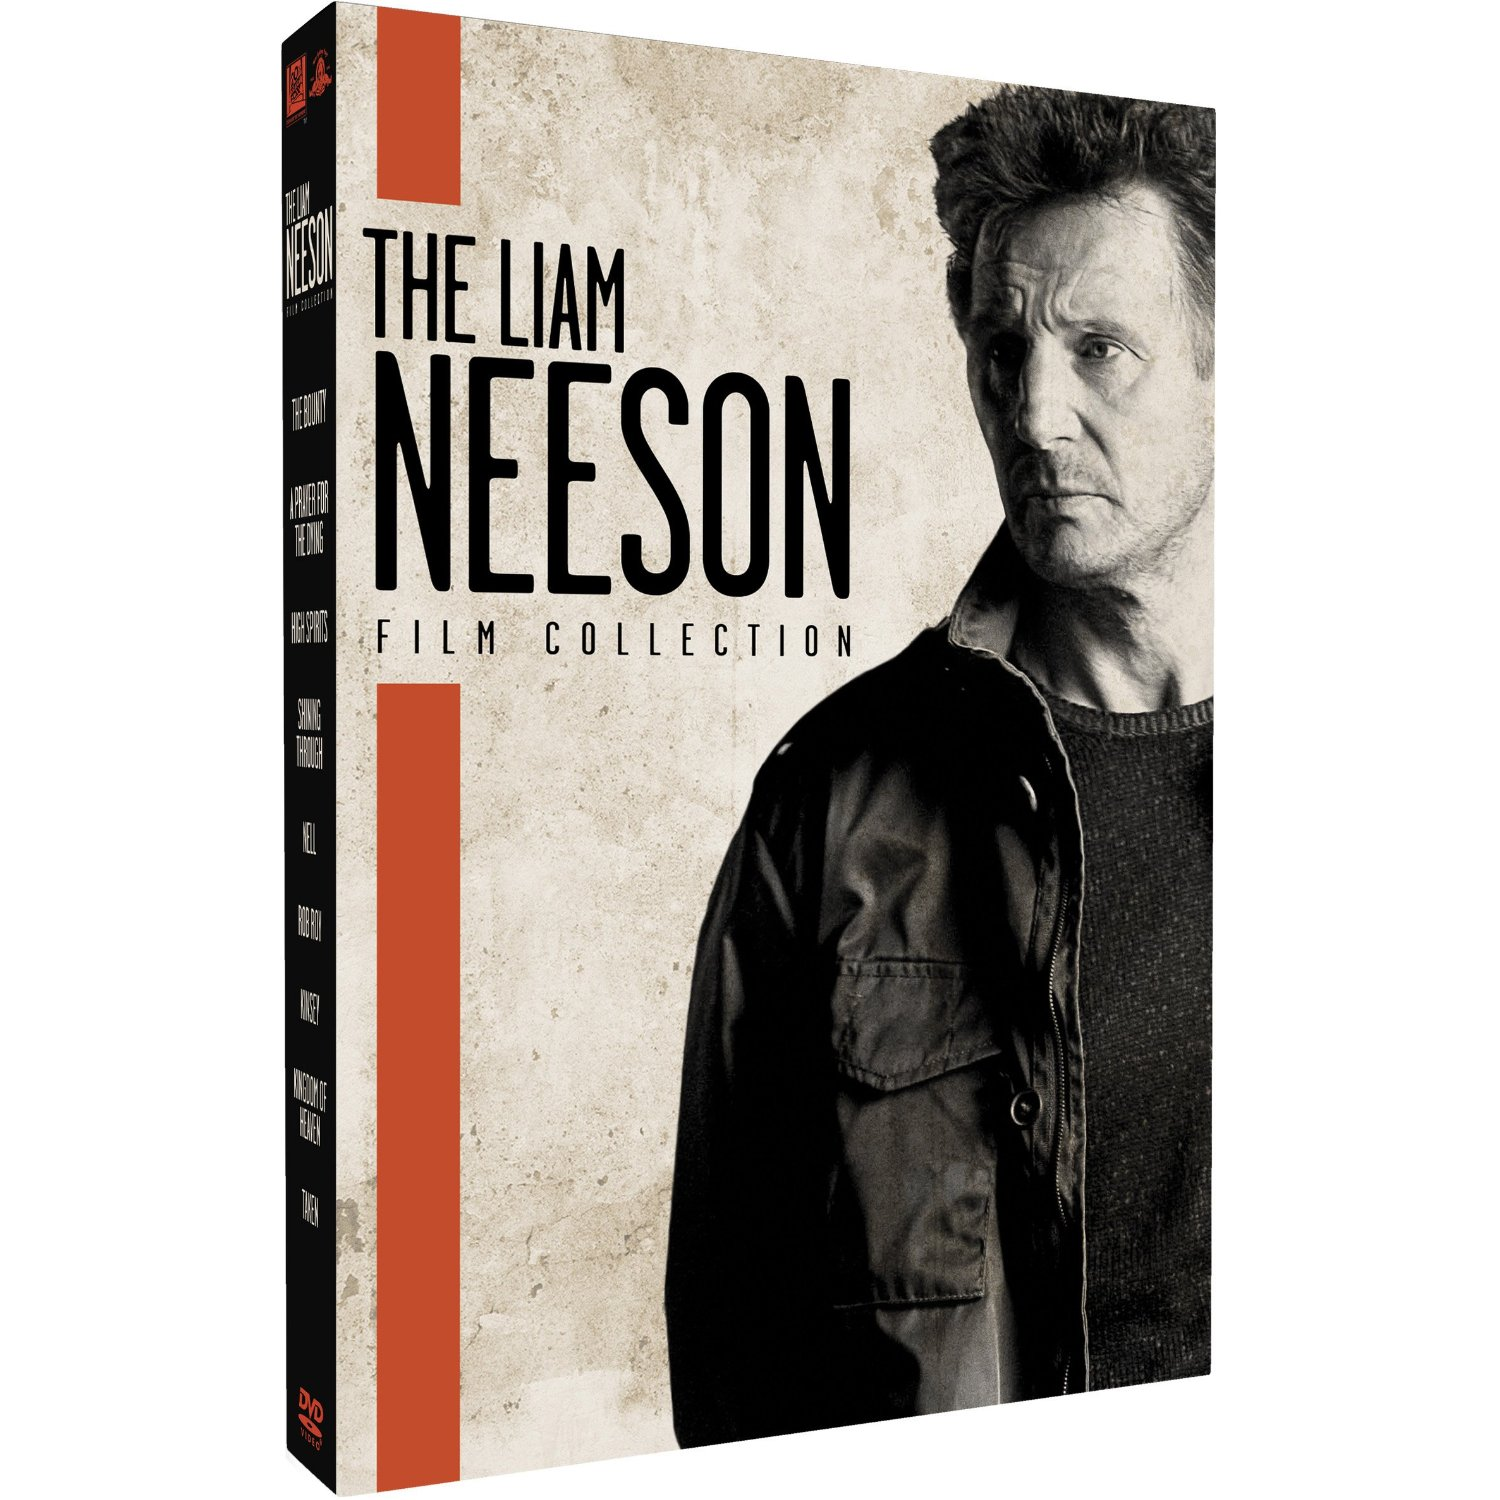 http://1.bp.blogspot.com/-jfgkJjxQwpo/TsUh2MkgLaI/AAAAAAAAAL4/XP7OSG00Ddo/s1600/the+liam+neeson+collection+dvd+review.jpg